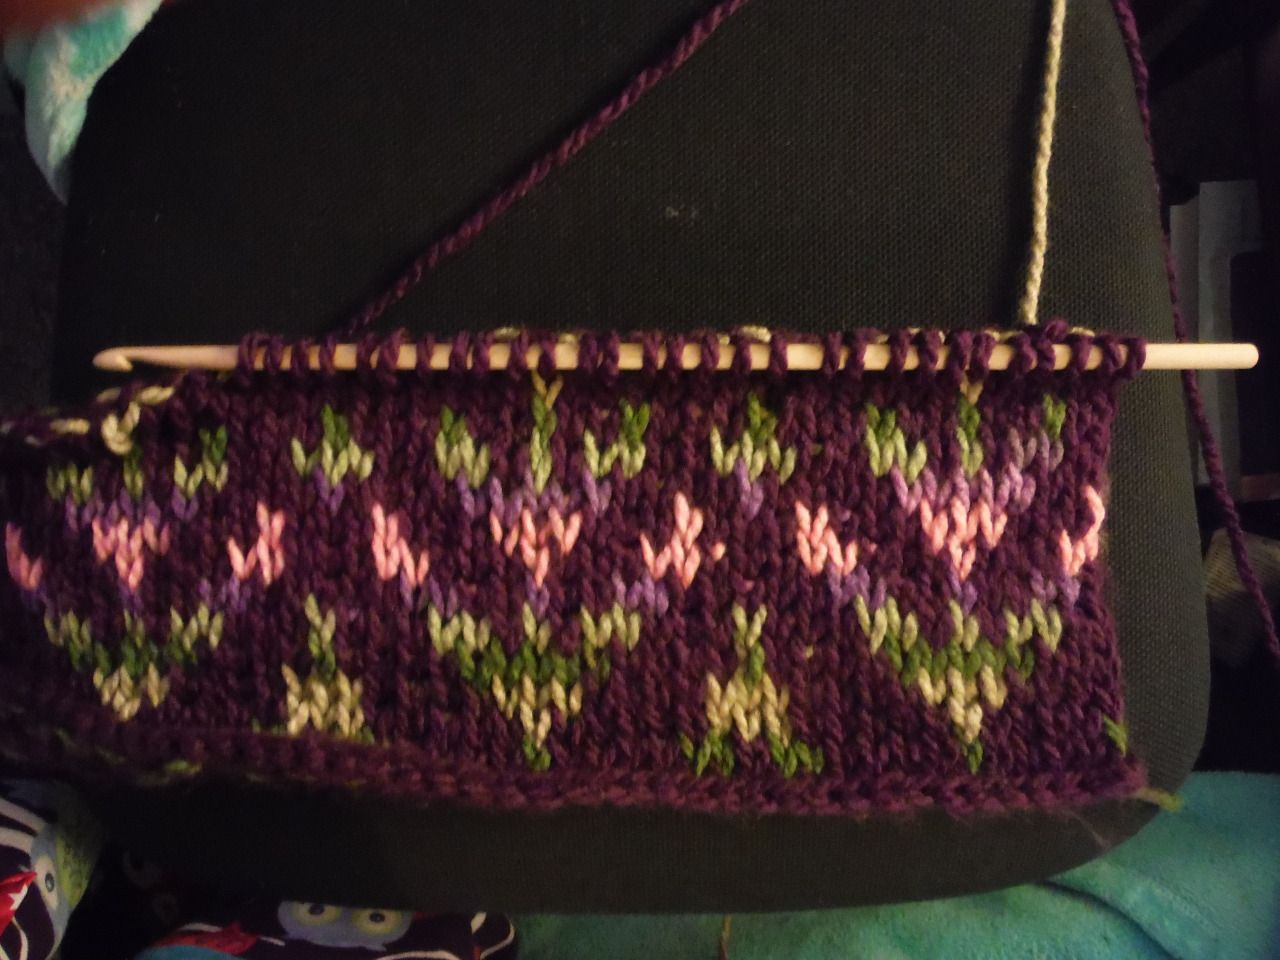 hooks-and-chains: I\'m converting a Fair Isle knitting pattern into ...